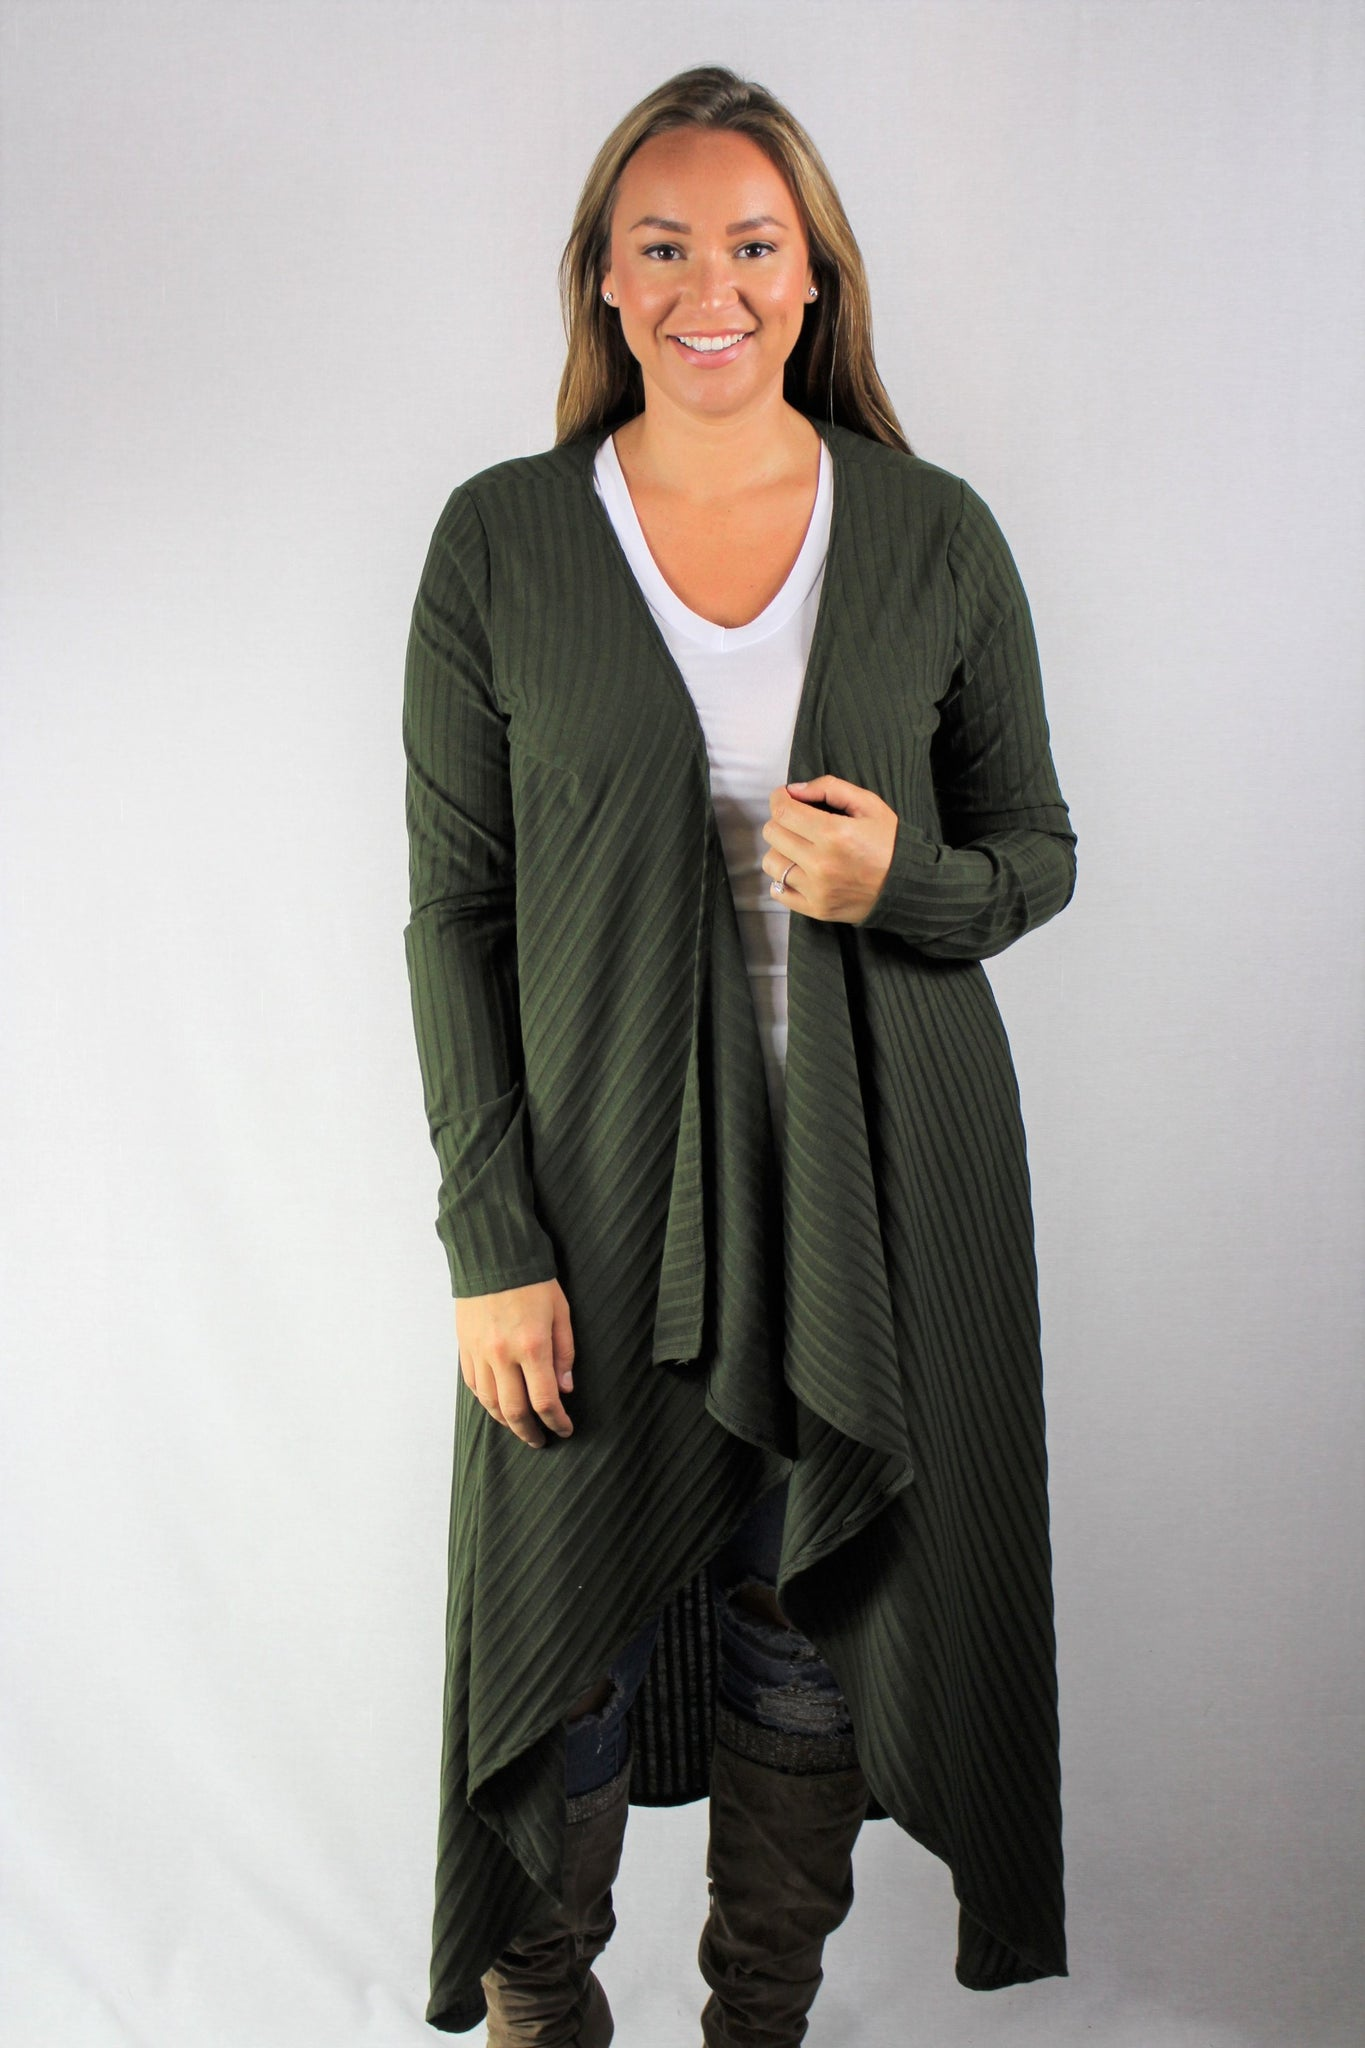 New Women's Boutique Olive Long Open Front Cardigan PLUS sizes 1x, 2x, 3x & 4x